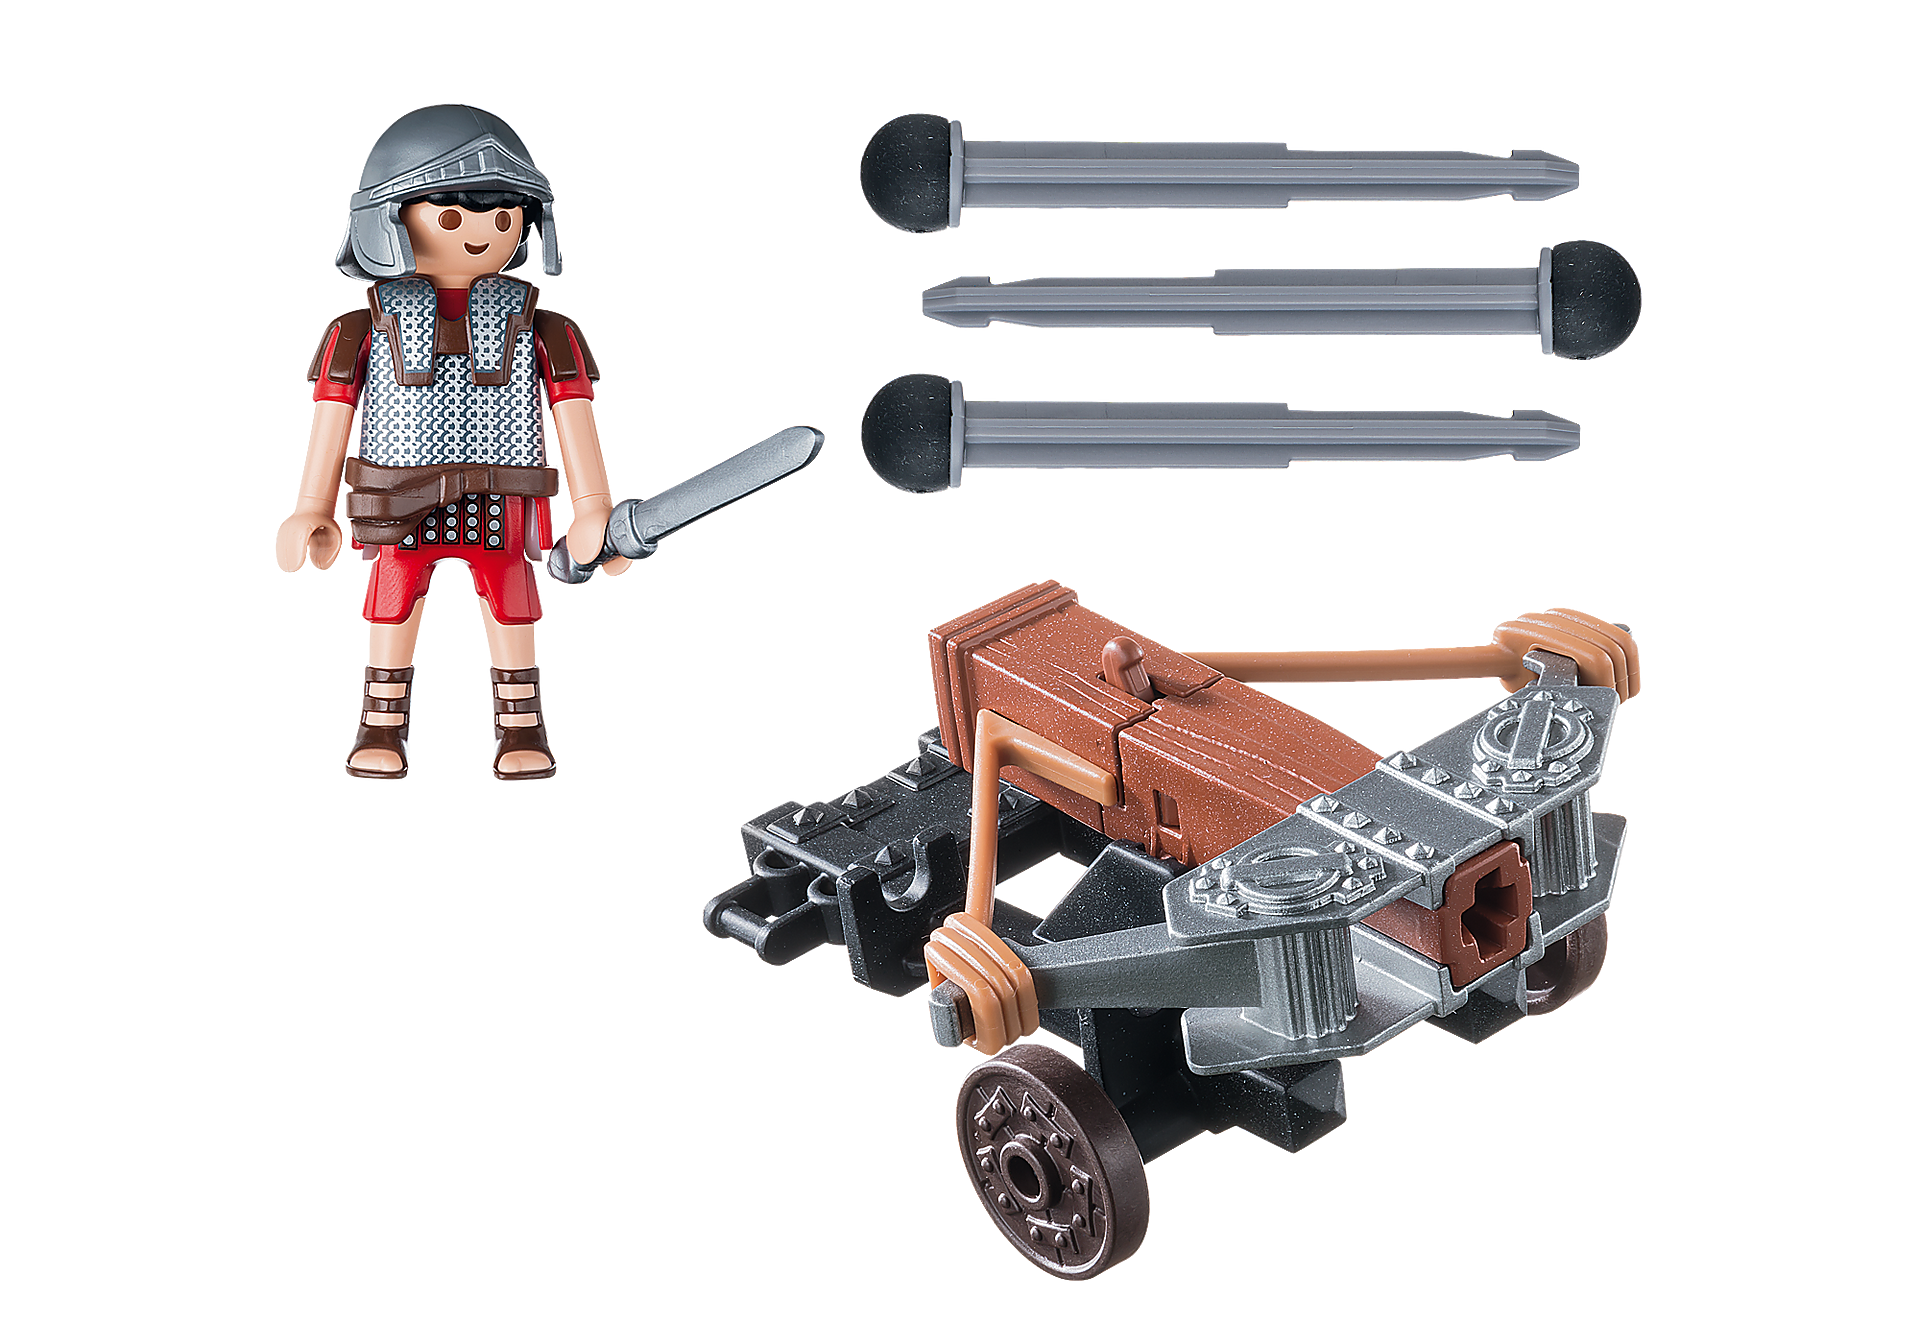 http://media.playmobil.com/i/playmobil/5392_product_box_back/Римляне и Египтяне: Легионер с Баллистой